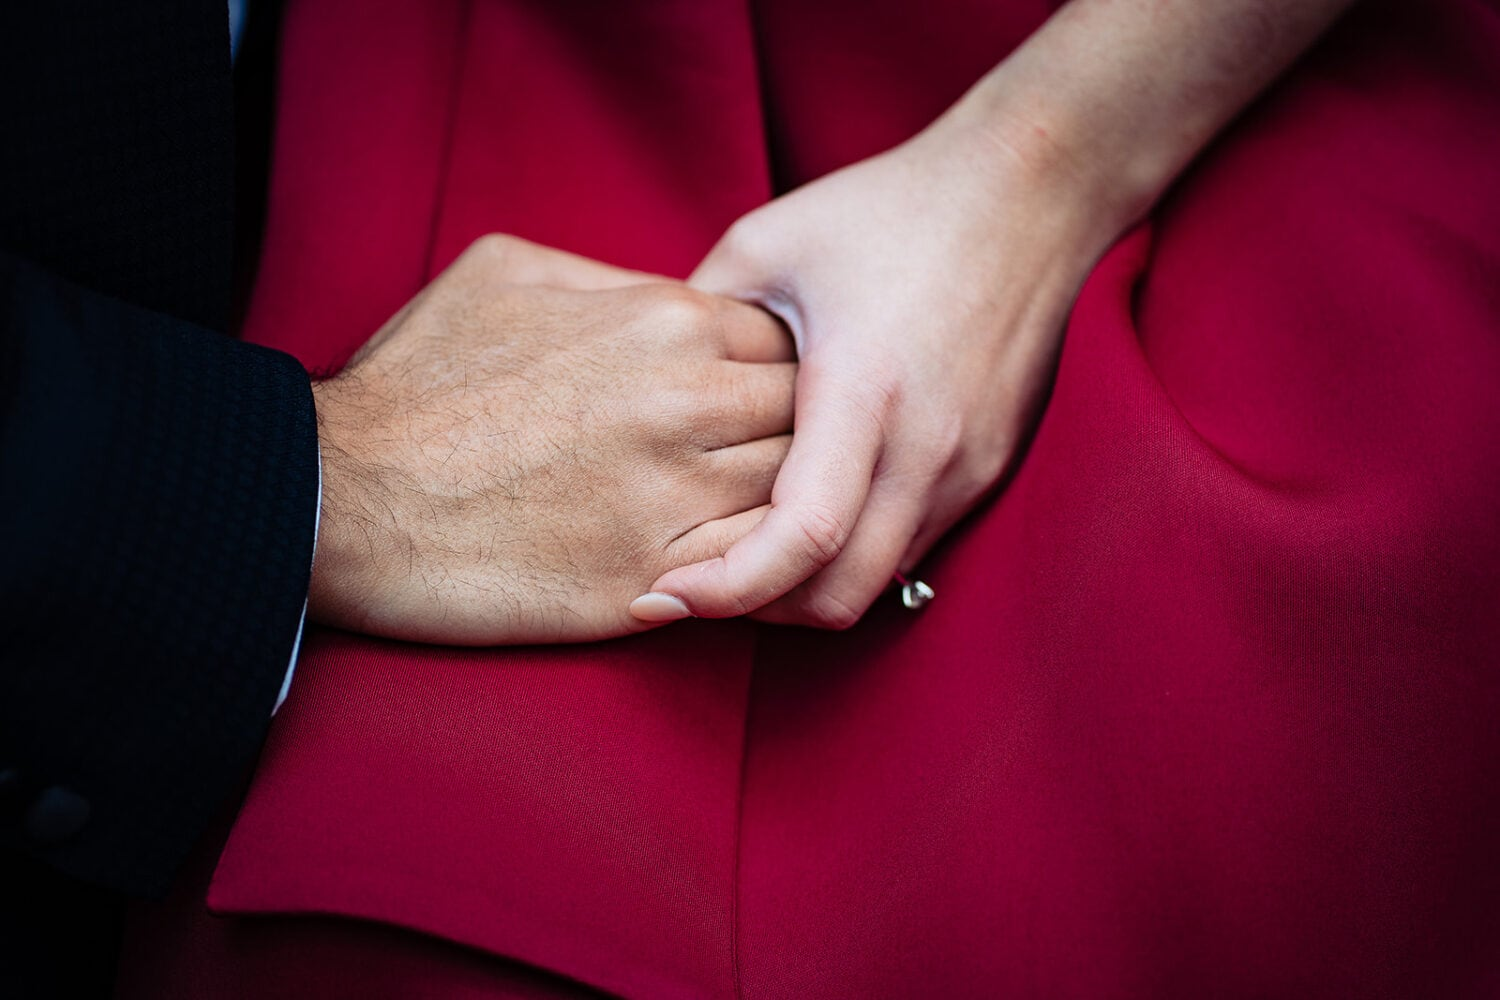 Asian couple holds hands with large diamond engagement ring on a red dress and navy suit